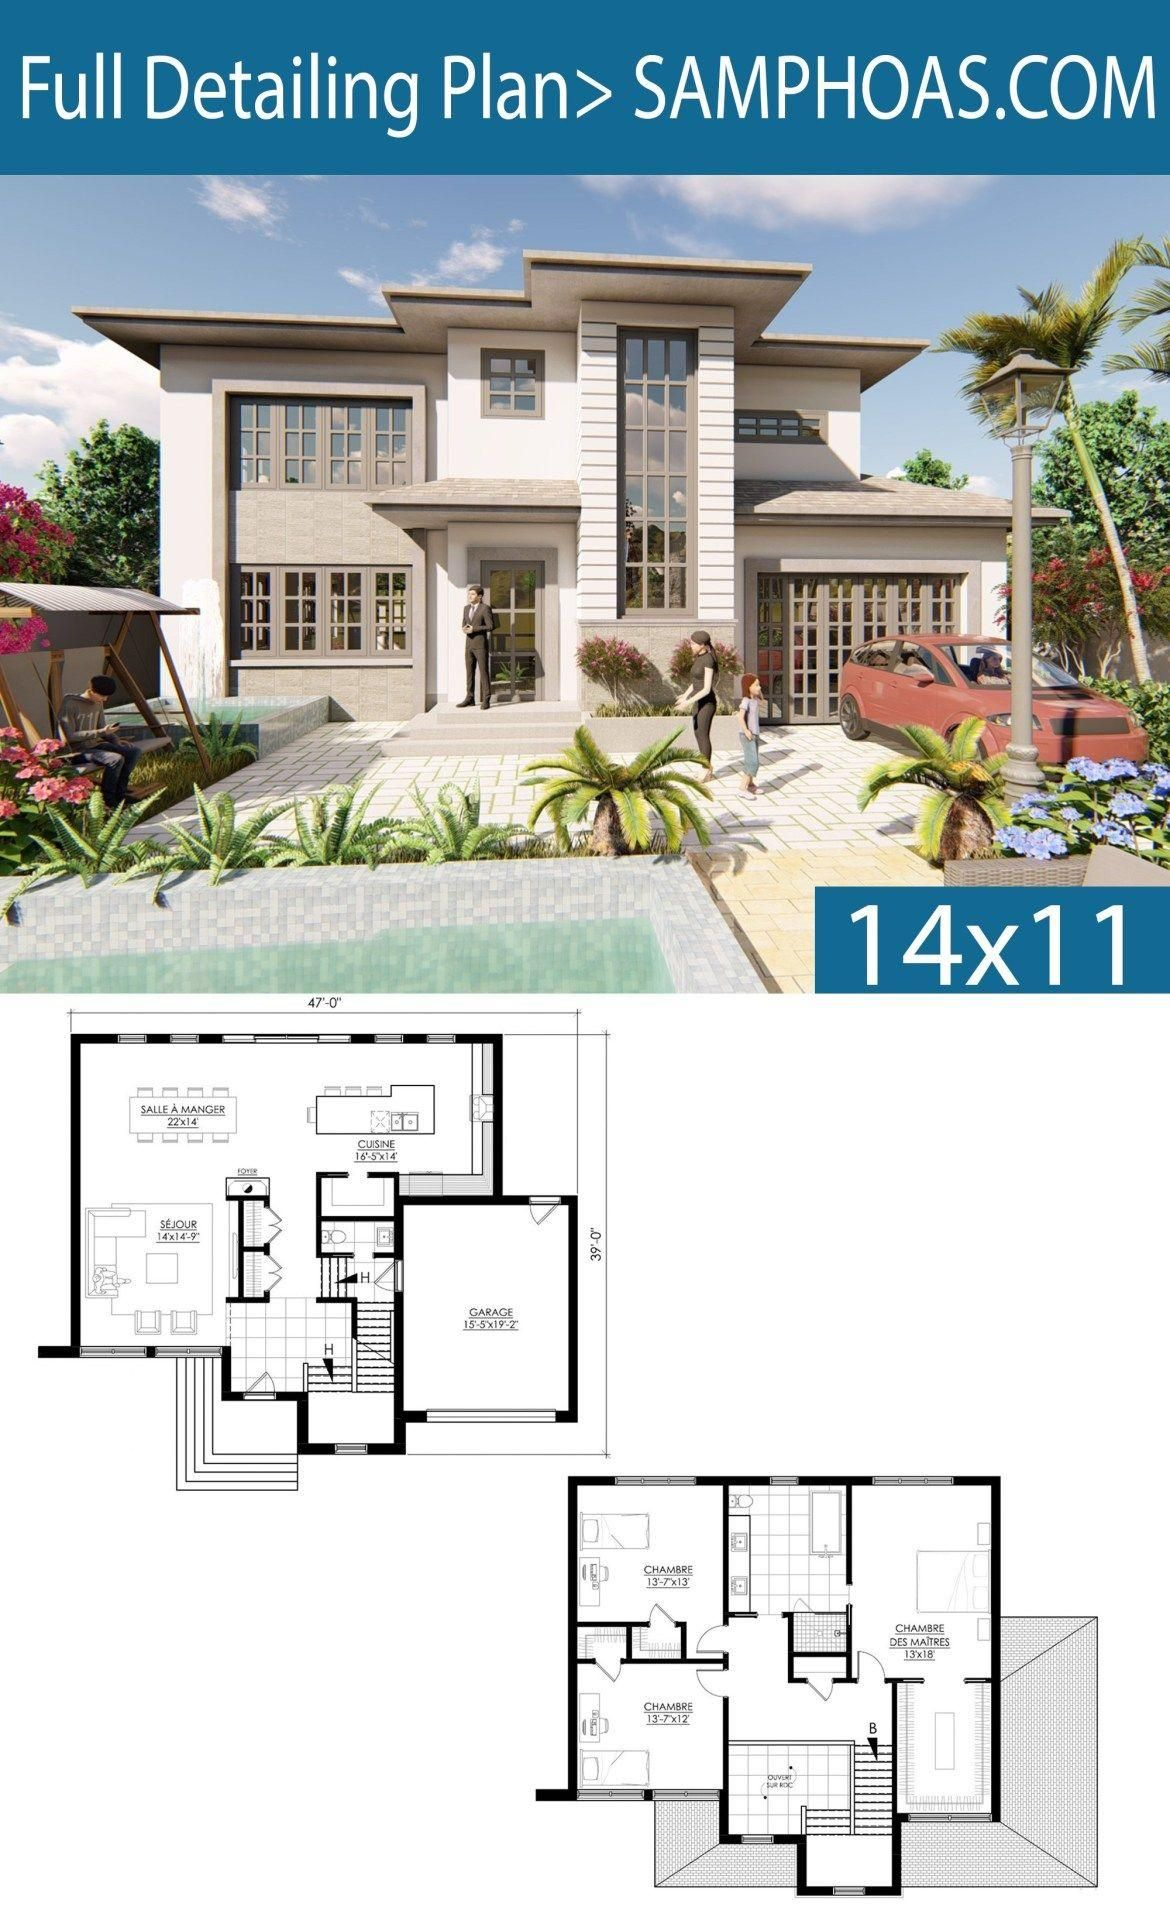 51 Plan Maison Design Etage In 2020 2 Story House Design House Architecture Design House Layouts